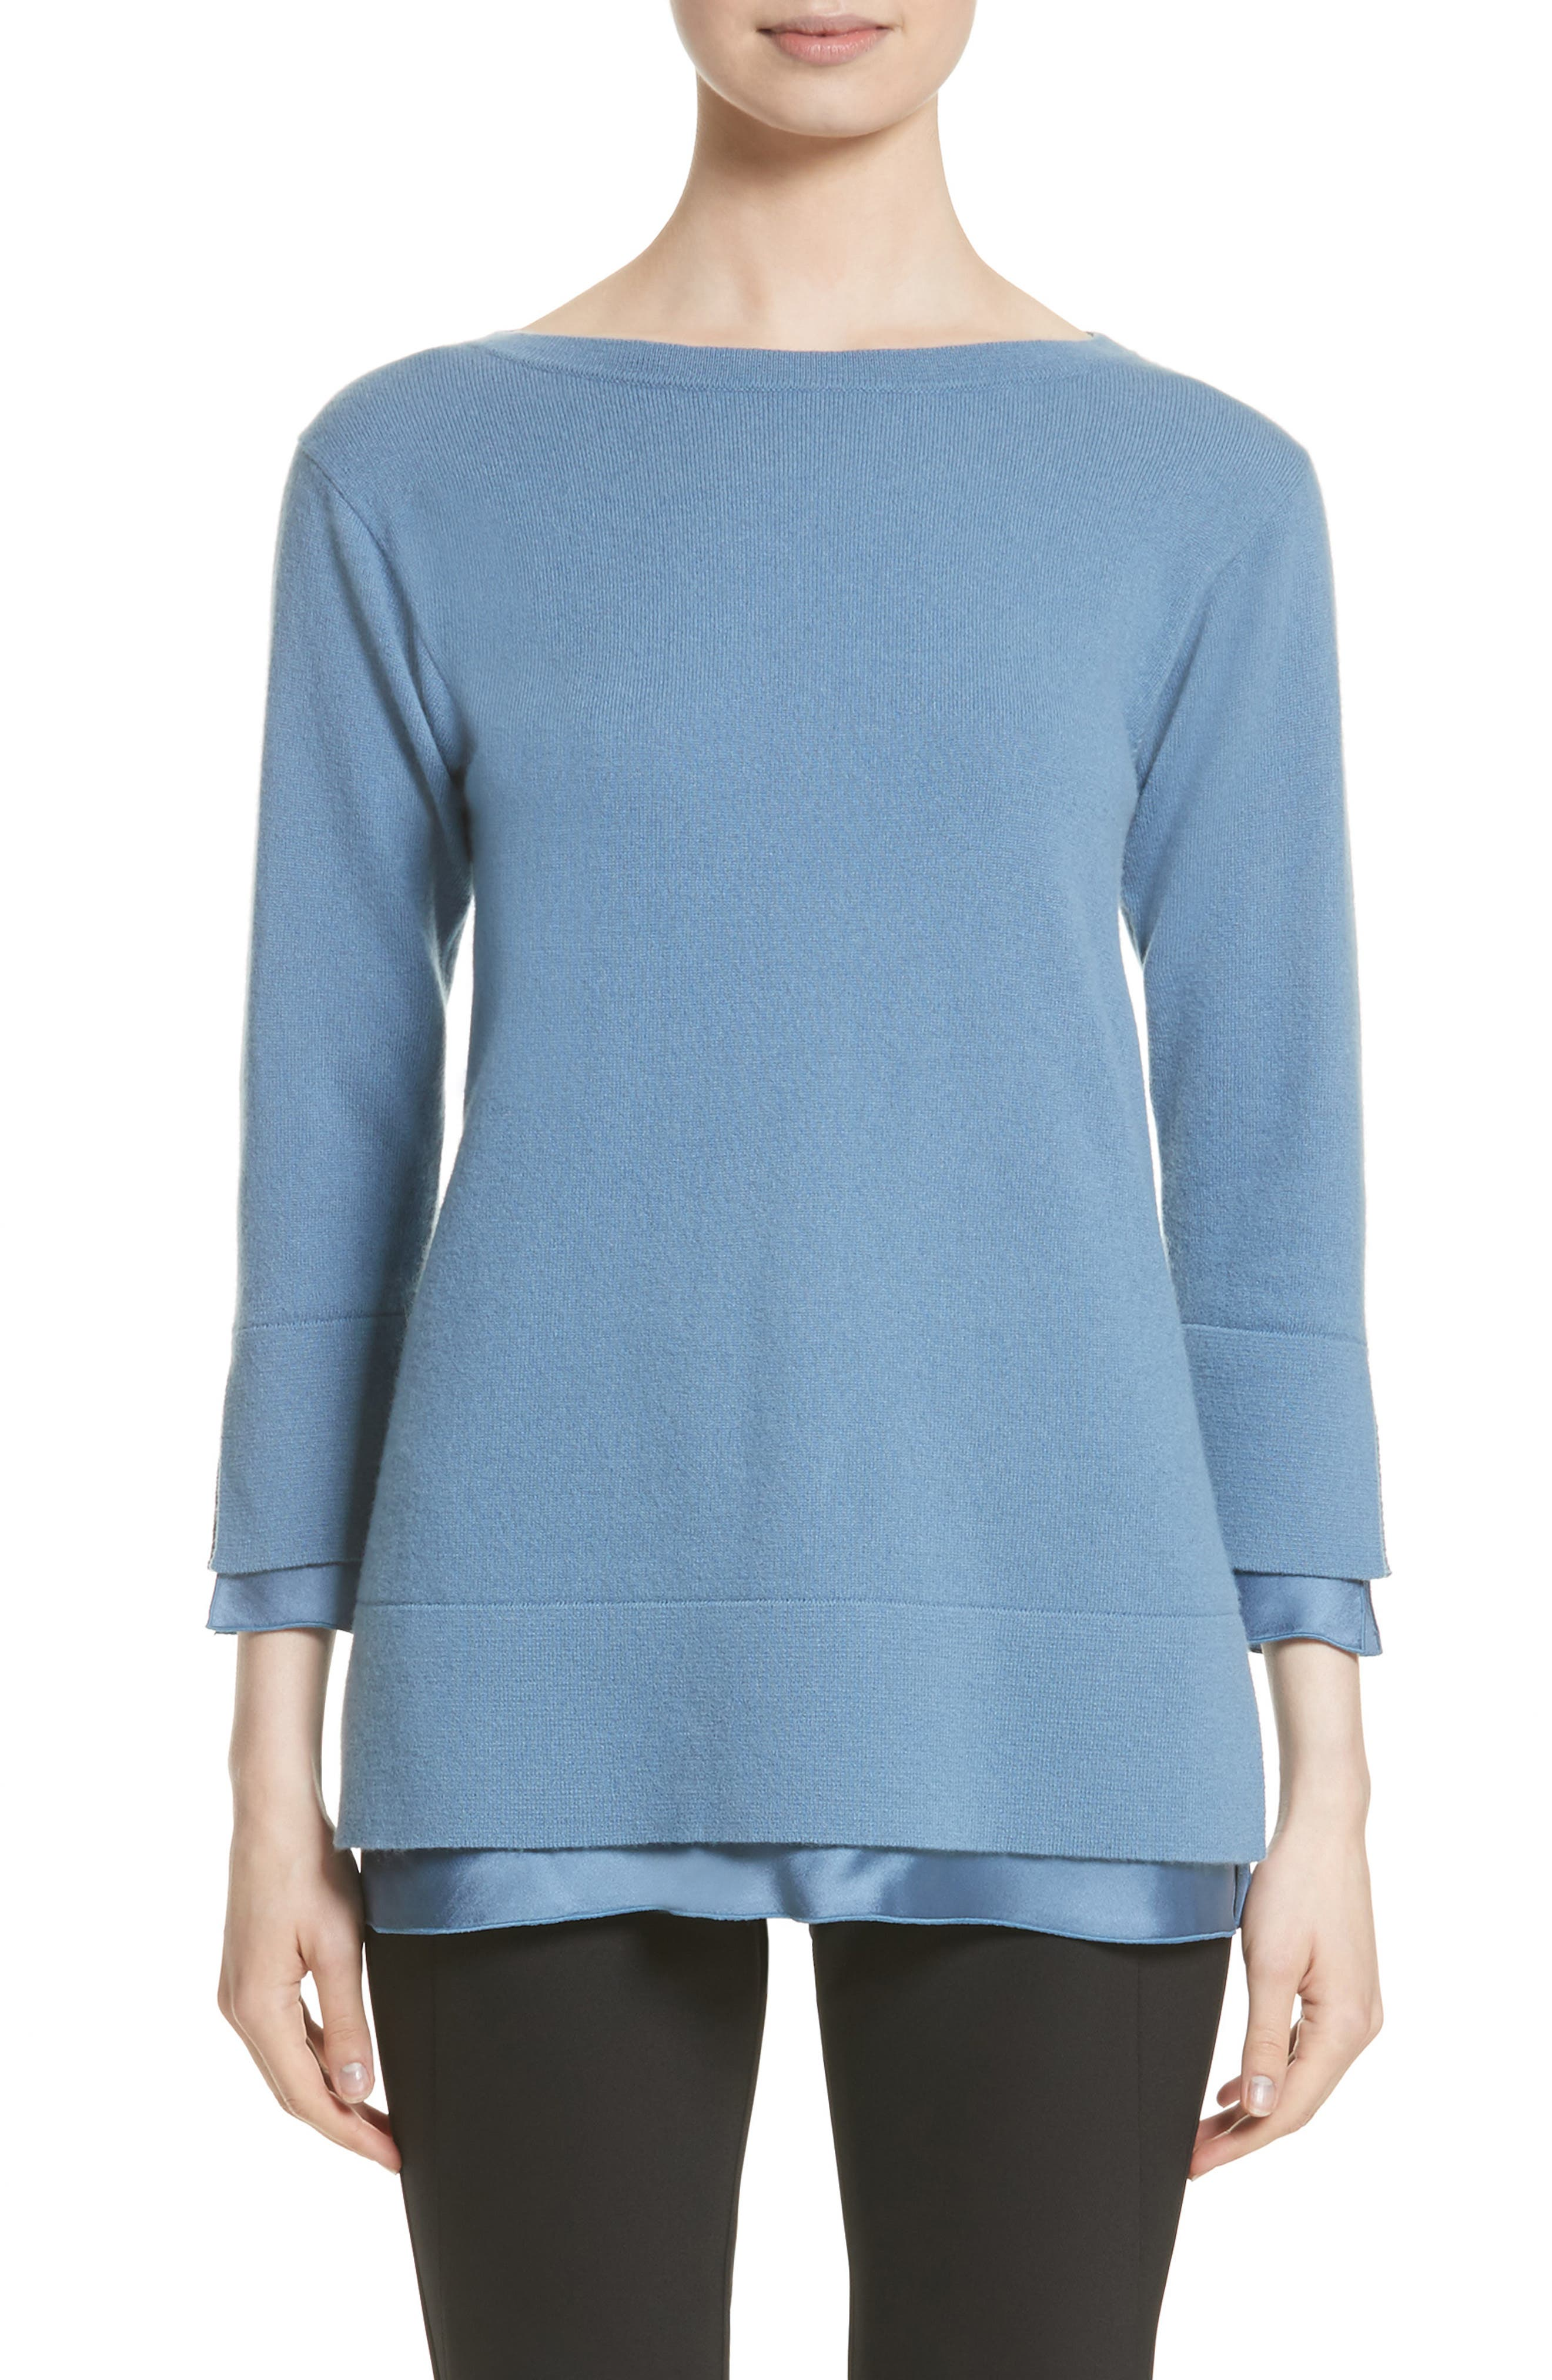 Lafayette 148 New York Charmeuse Trim Cashmere Sweater (Nordstrom Exclusive)